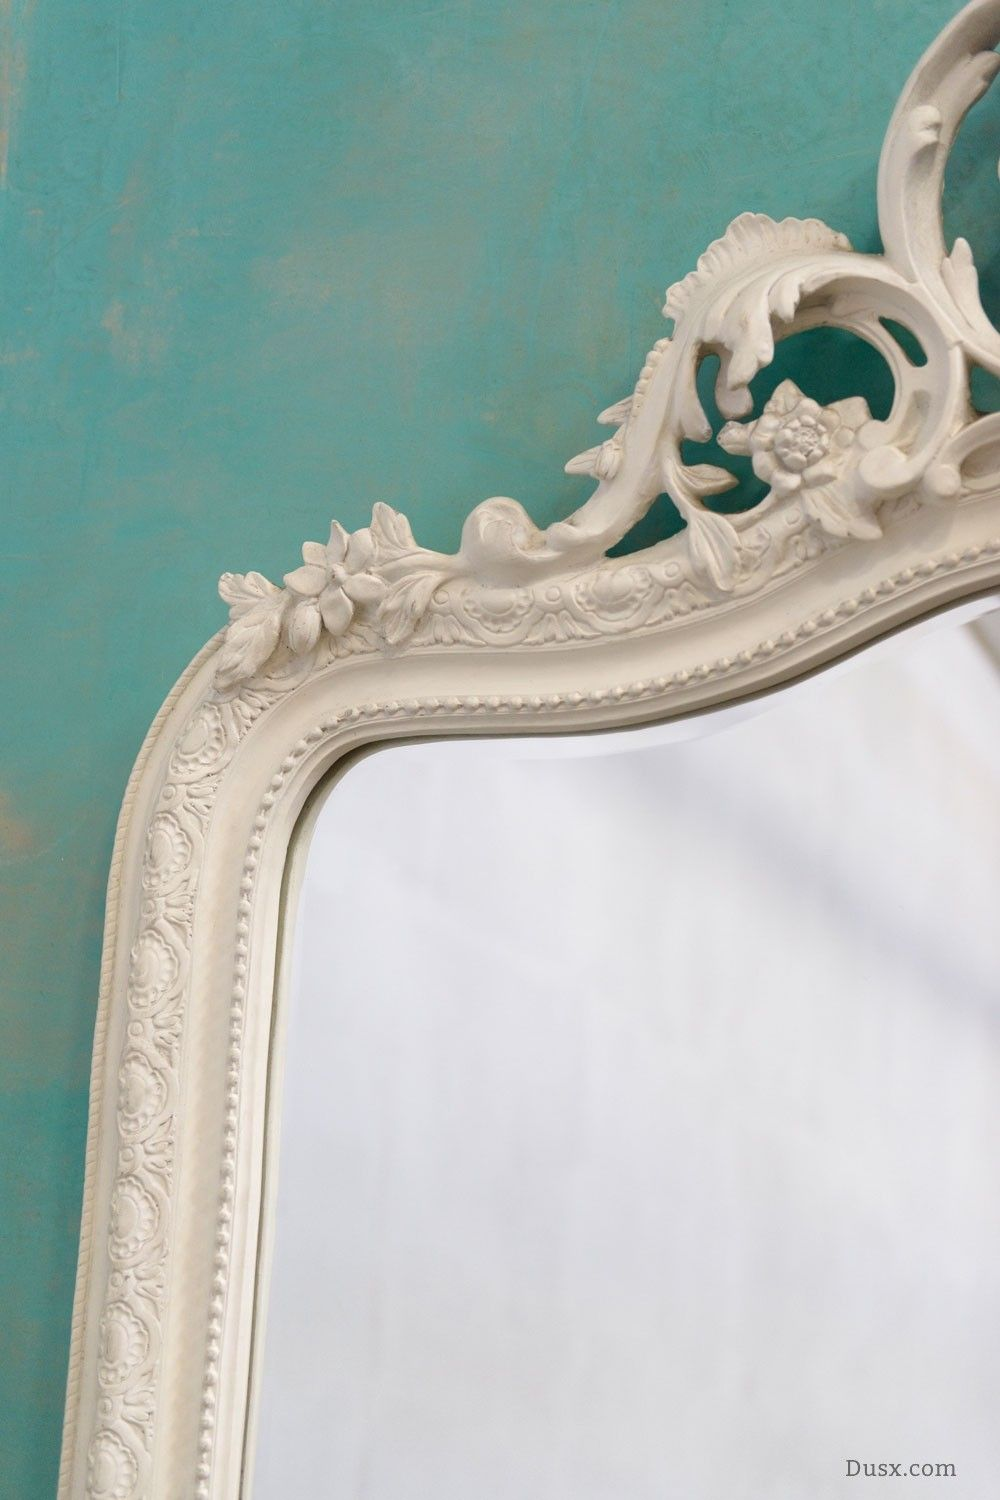 Manon french rococo white bevelled mirror for sale at dusx home dusx french mirrors chandeliers furniture aloadofball Images